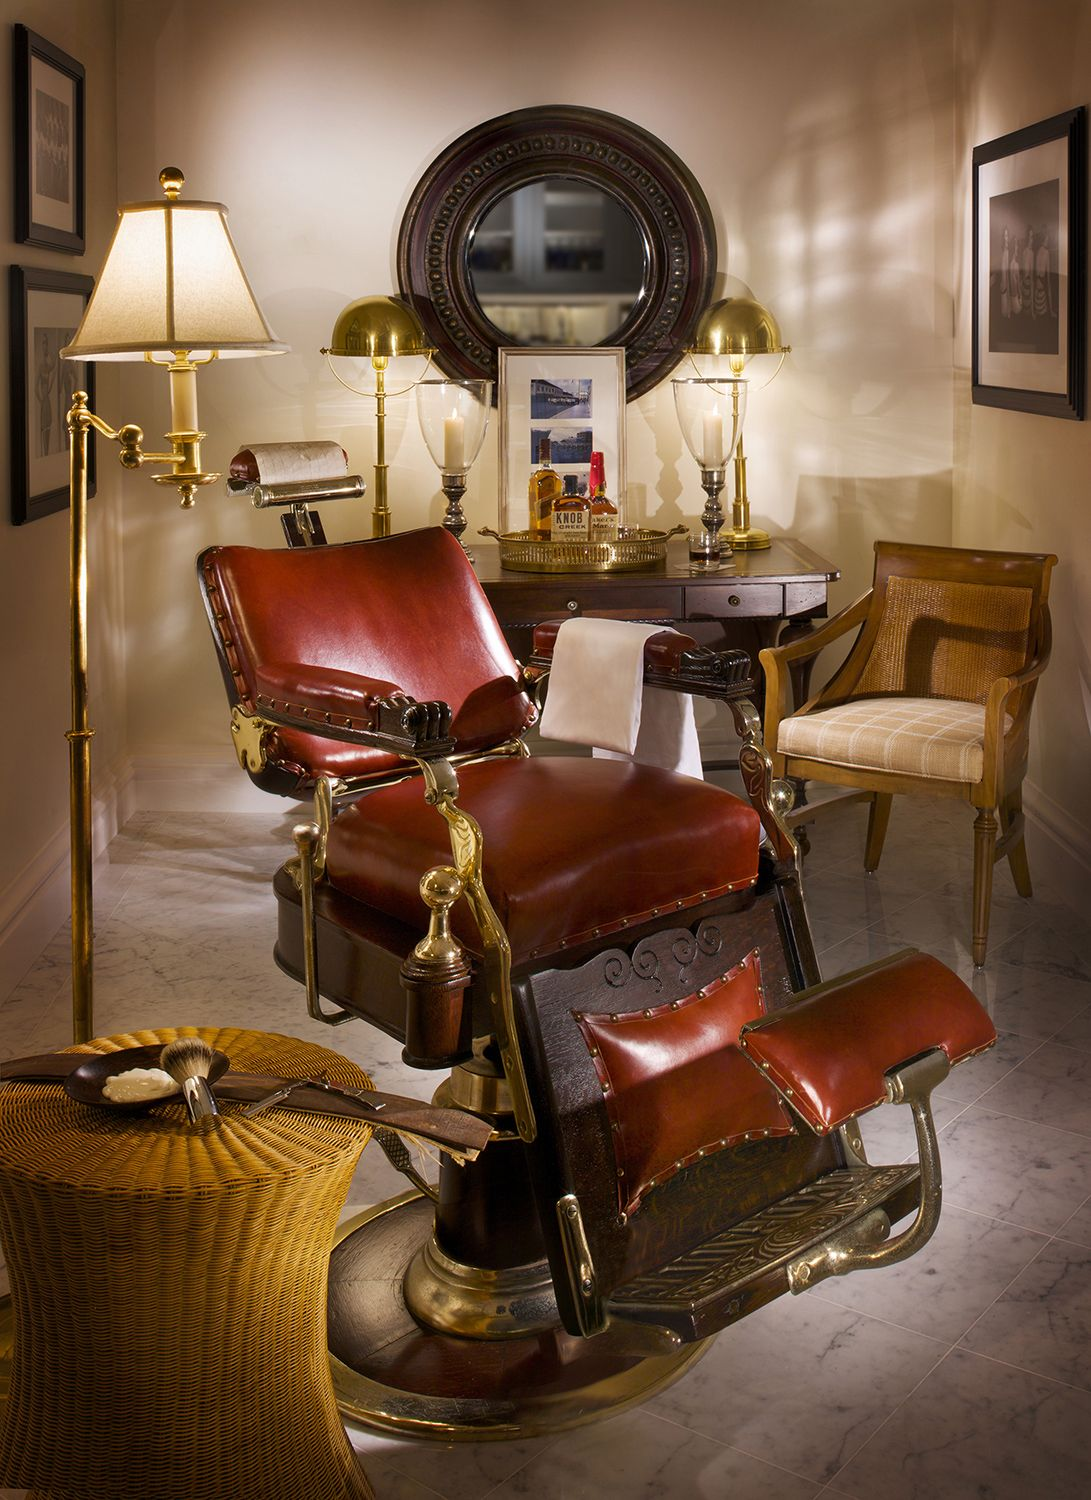 Antique barber chairs koken - Images Of Tucker S Point Spa In Bermuda